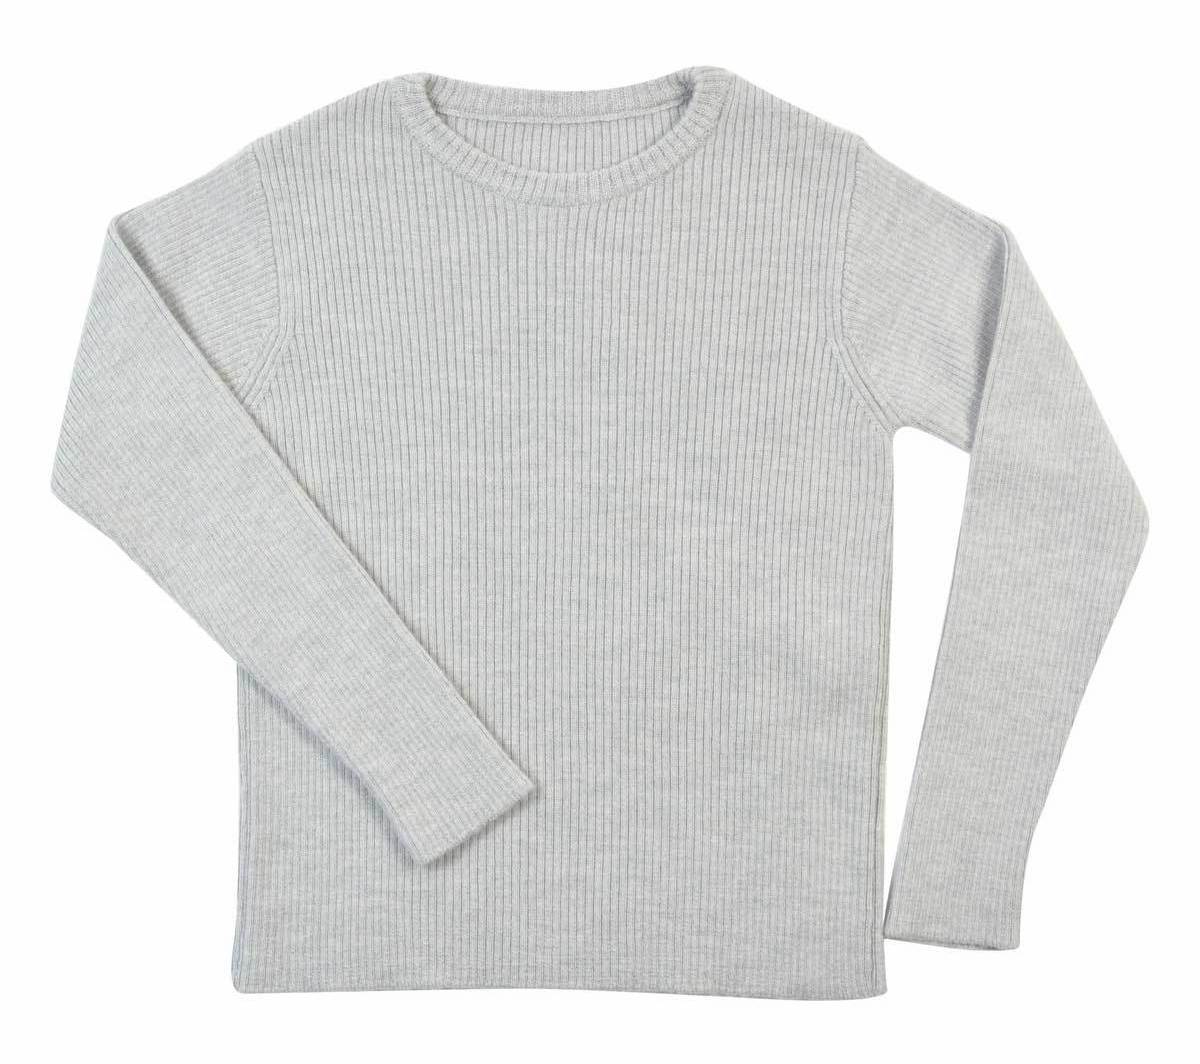 Nui Organics Merino Wool Sweater for Kids